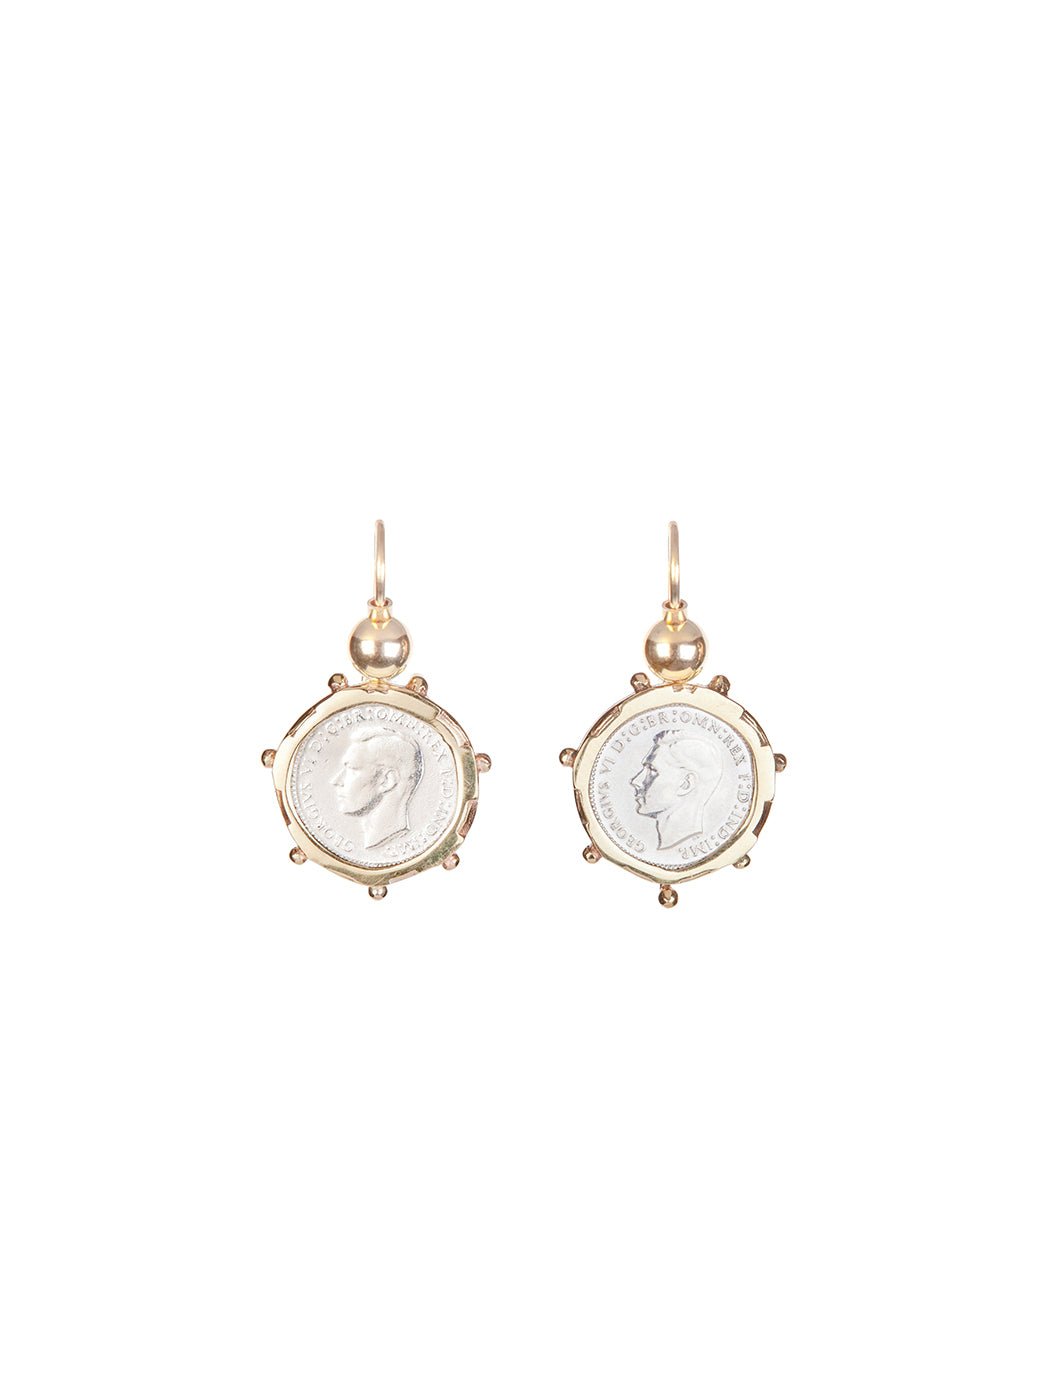 Fiorina Jewellery Gold Encased 3p Coin Earrings Gold Highlights